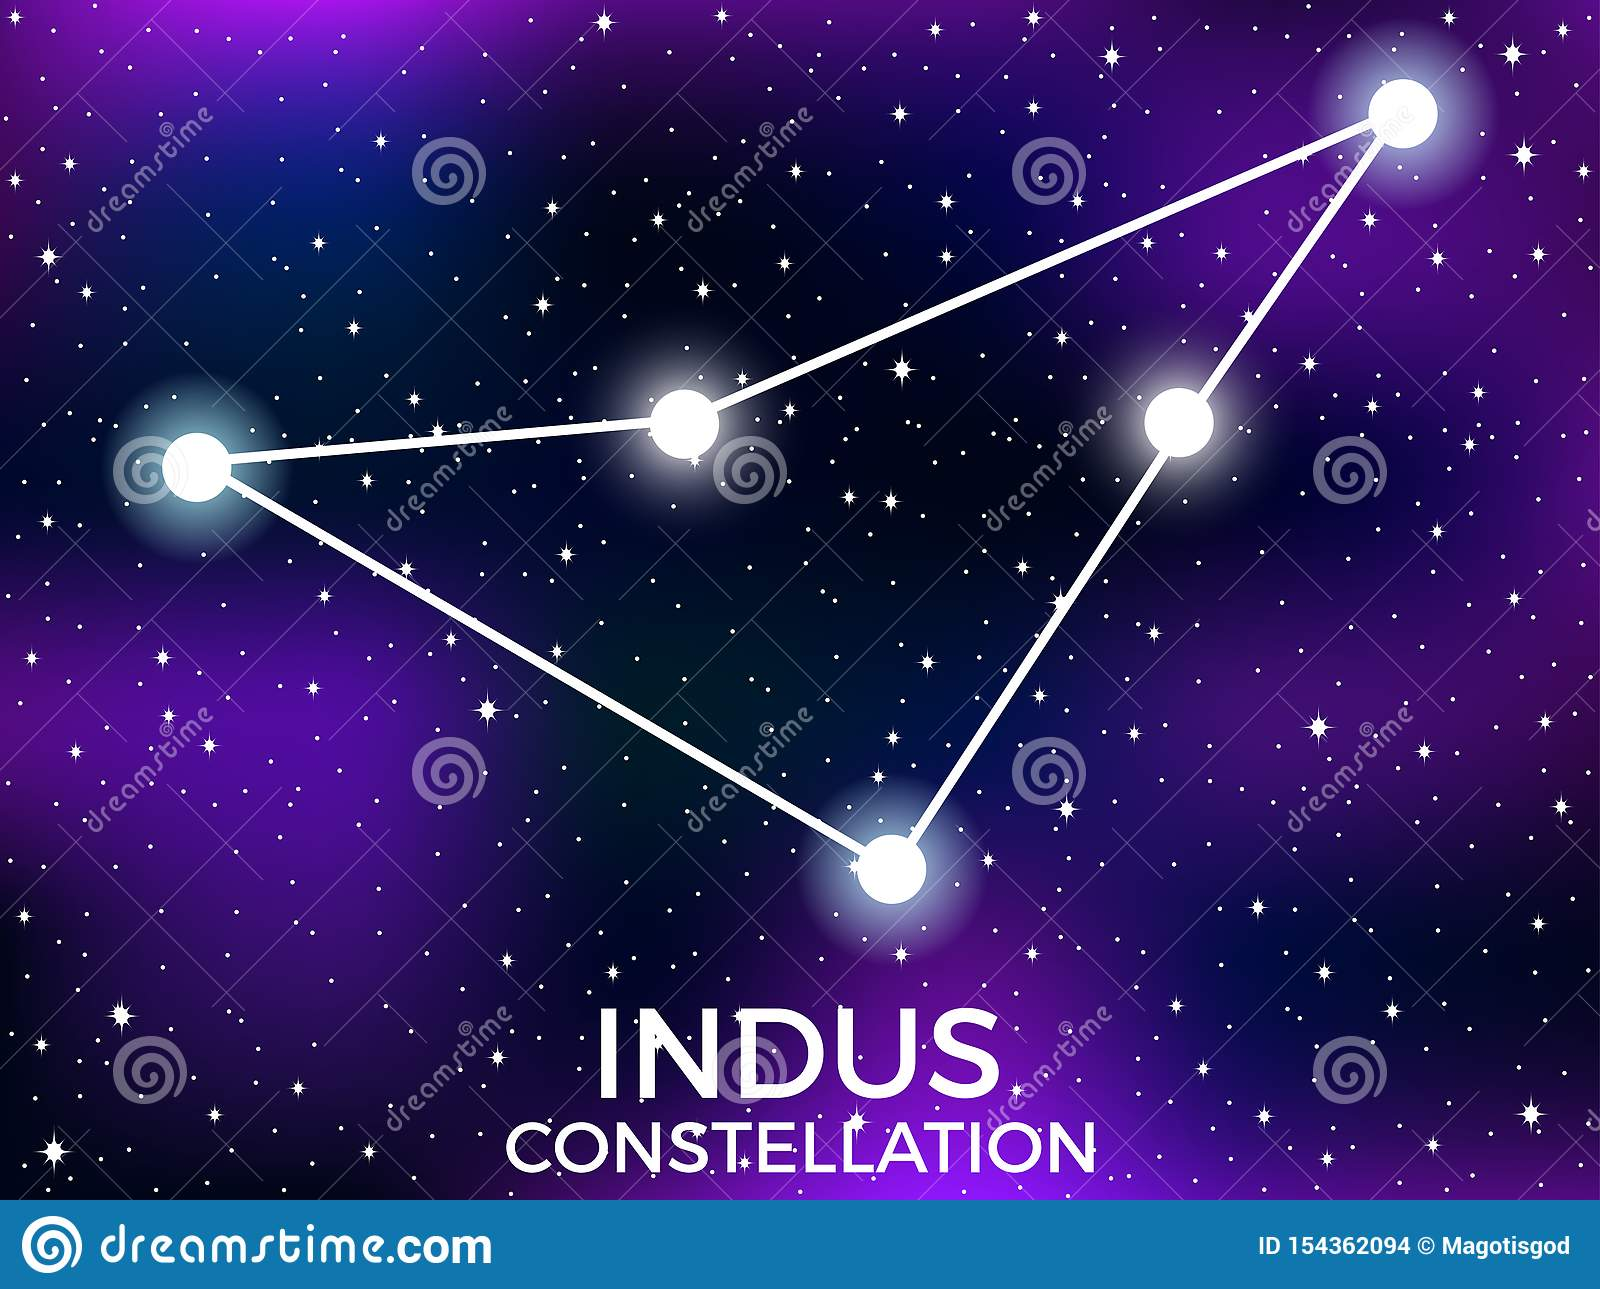 Indus constellation. Starry night sky. Cluster of stars and galaxies. Deep space. Vector